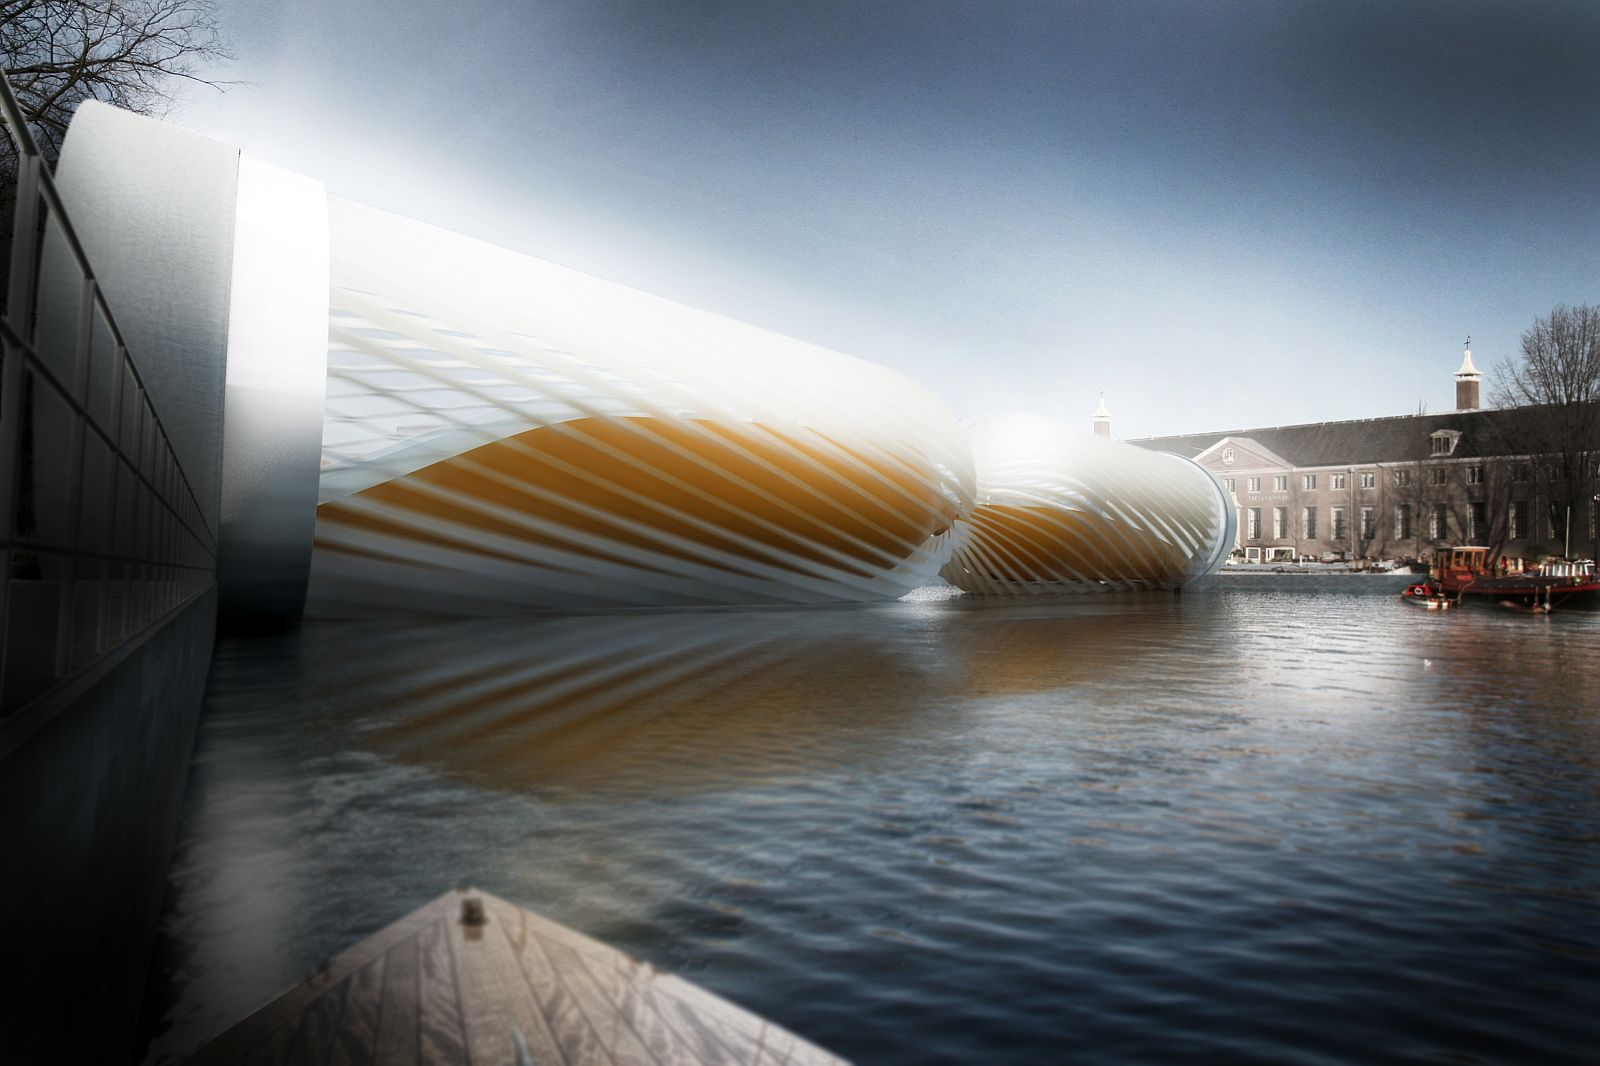 Turbine amsterdam bridge evolo architecture magazine for Design bridge amsterdam